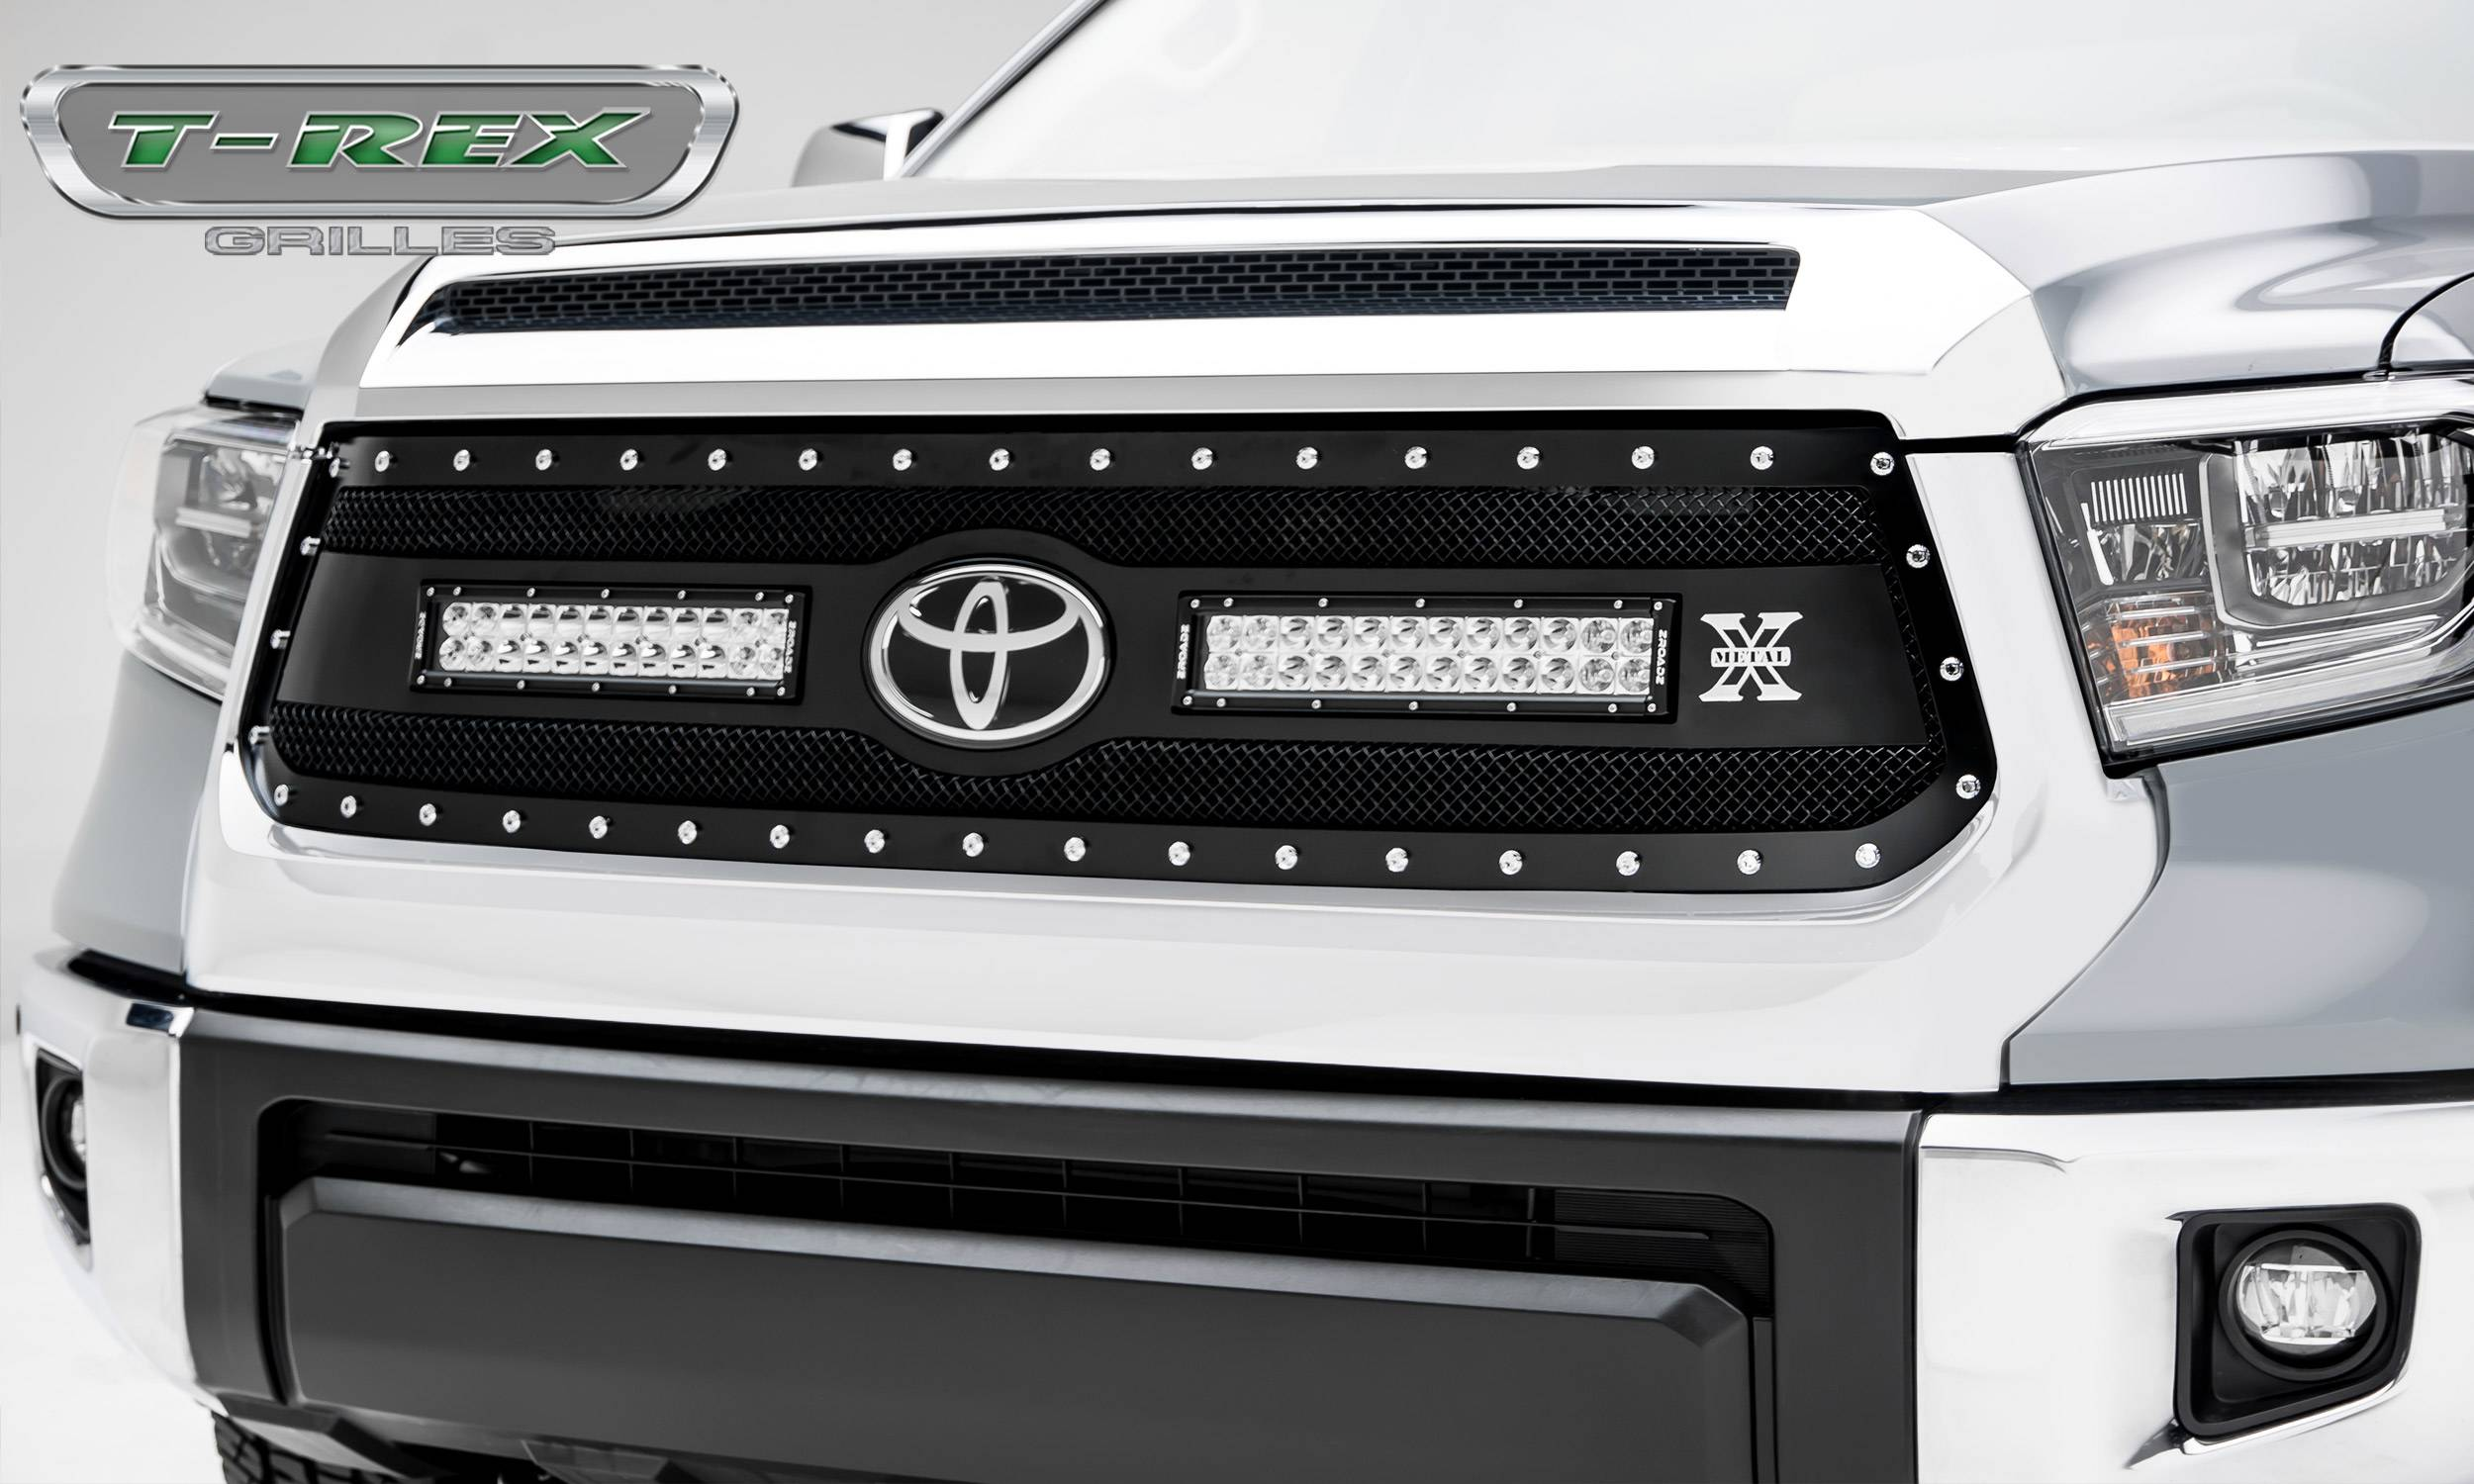 T-REX Grilles - Toyota Tundra Torch Grille - Main Replacement w/ OE Logo Provision - Black Powdercoated Woven Wire Mesh  - Pt # 6319661